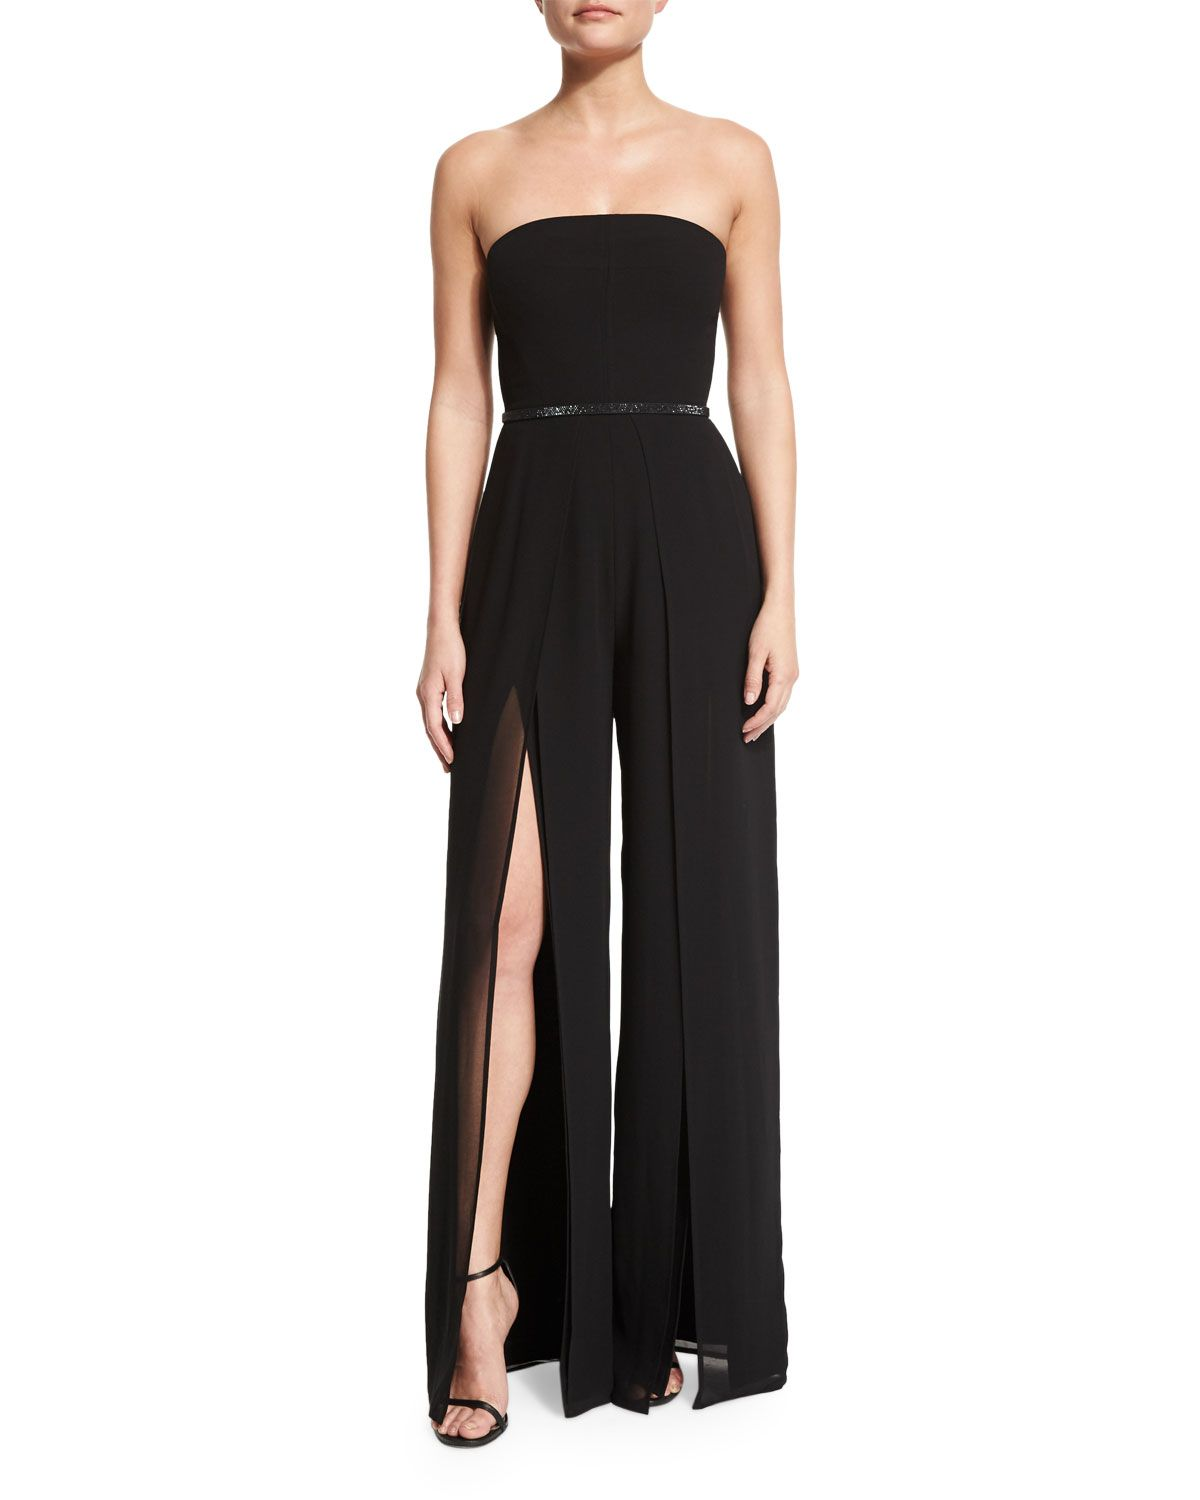 e627808891a Strapless Belted Wide-Leg Jumpsuit w Thigh-High Slits